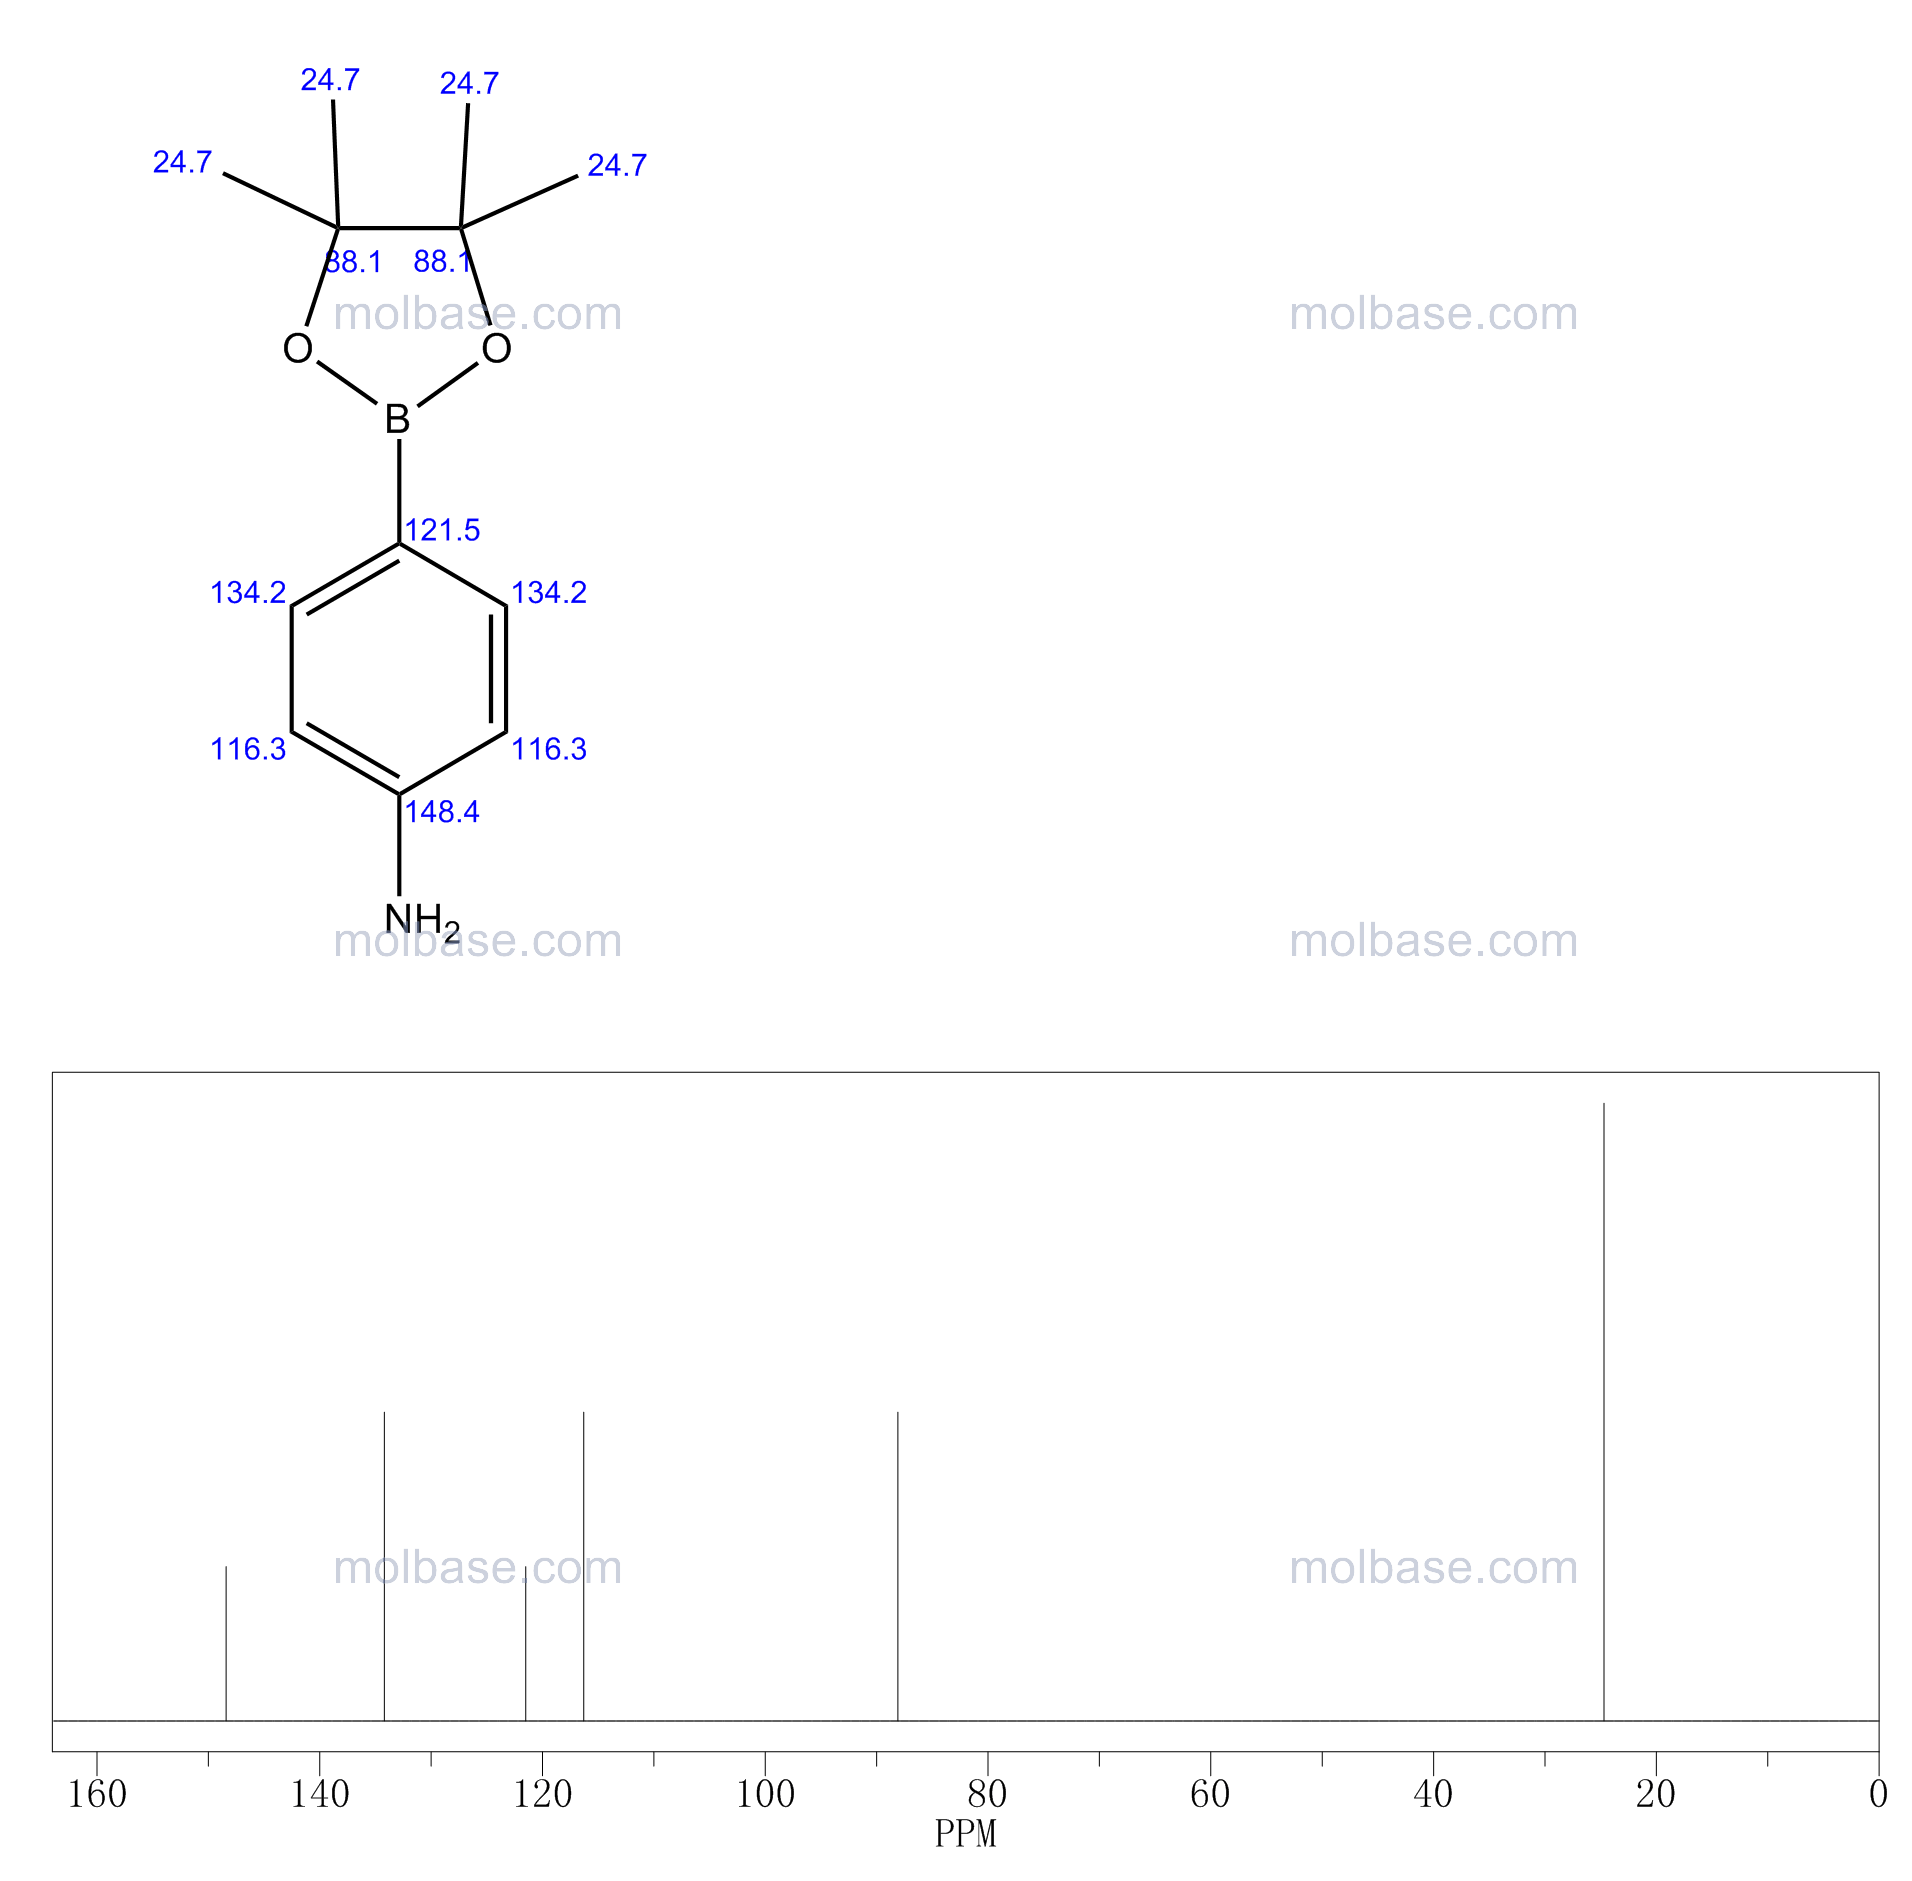 4-Aminophenylboronic acid pinacol ester NMR spectra analysis, Chemical CAS NO. 214360-73-3 NMR spectral analysis, 4-Aminophenylboronic acid pinacol ester C-NMR spectrum